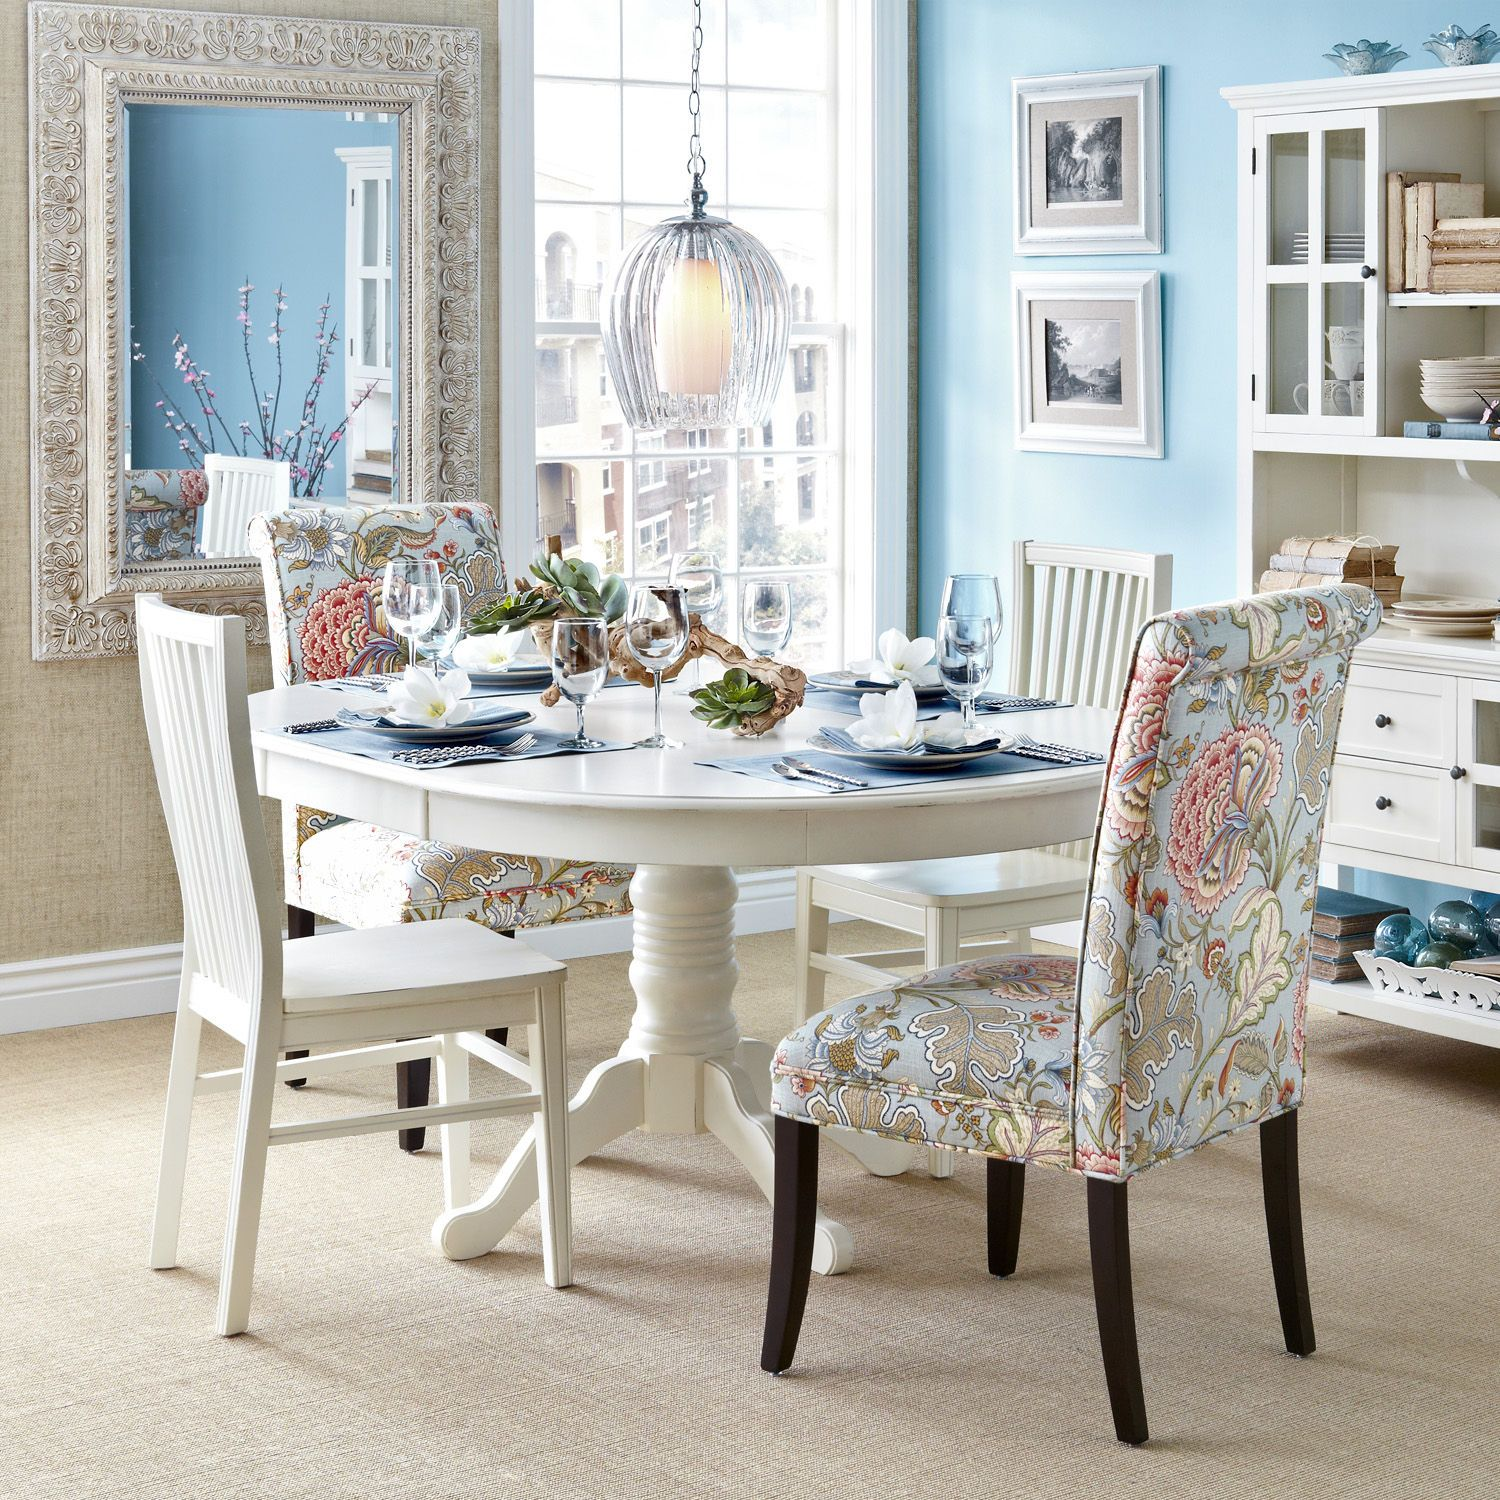 Angela Blue Floral Dining Chair | Dining chairs, Kitchen breakfast ...